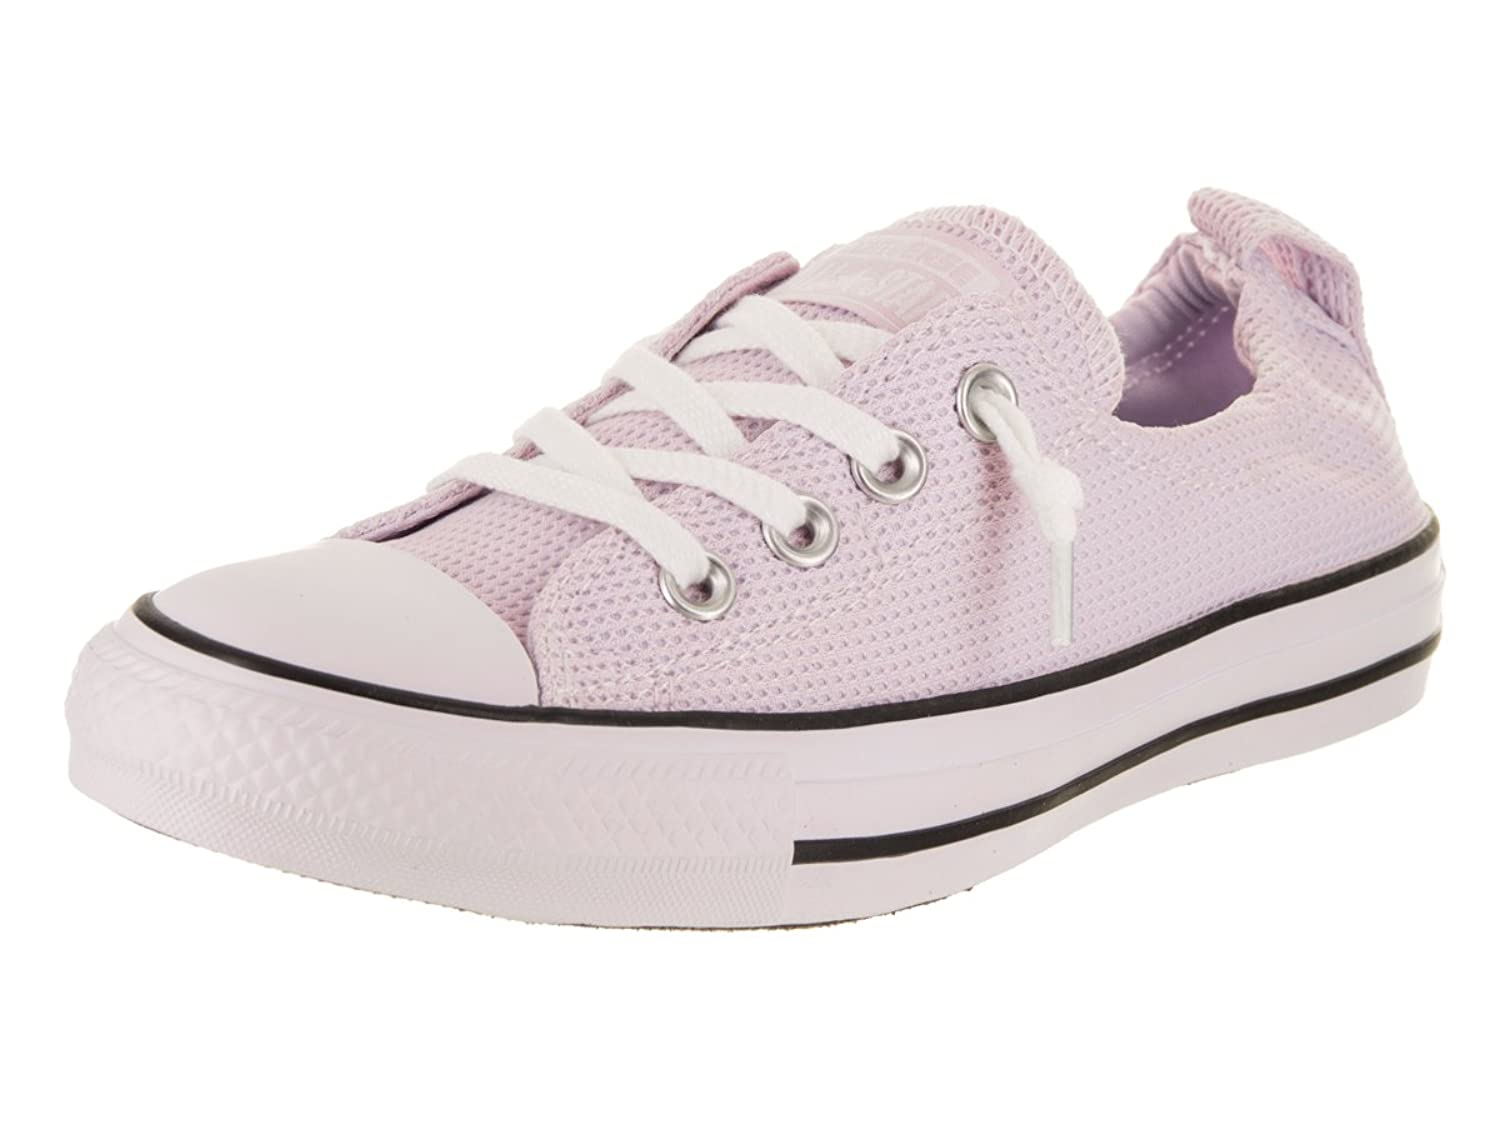 Converse Chuck Taylor All Star Shoreline Slip Women's Shoes Grape/White 560856f B073RNR247 6 B(M) US